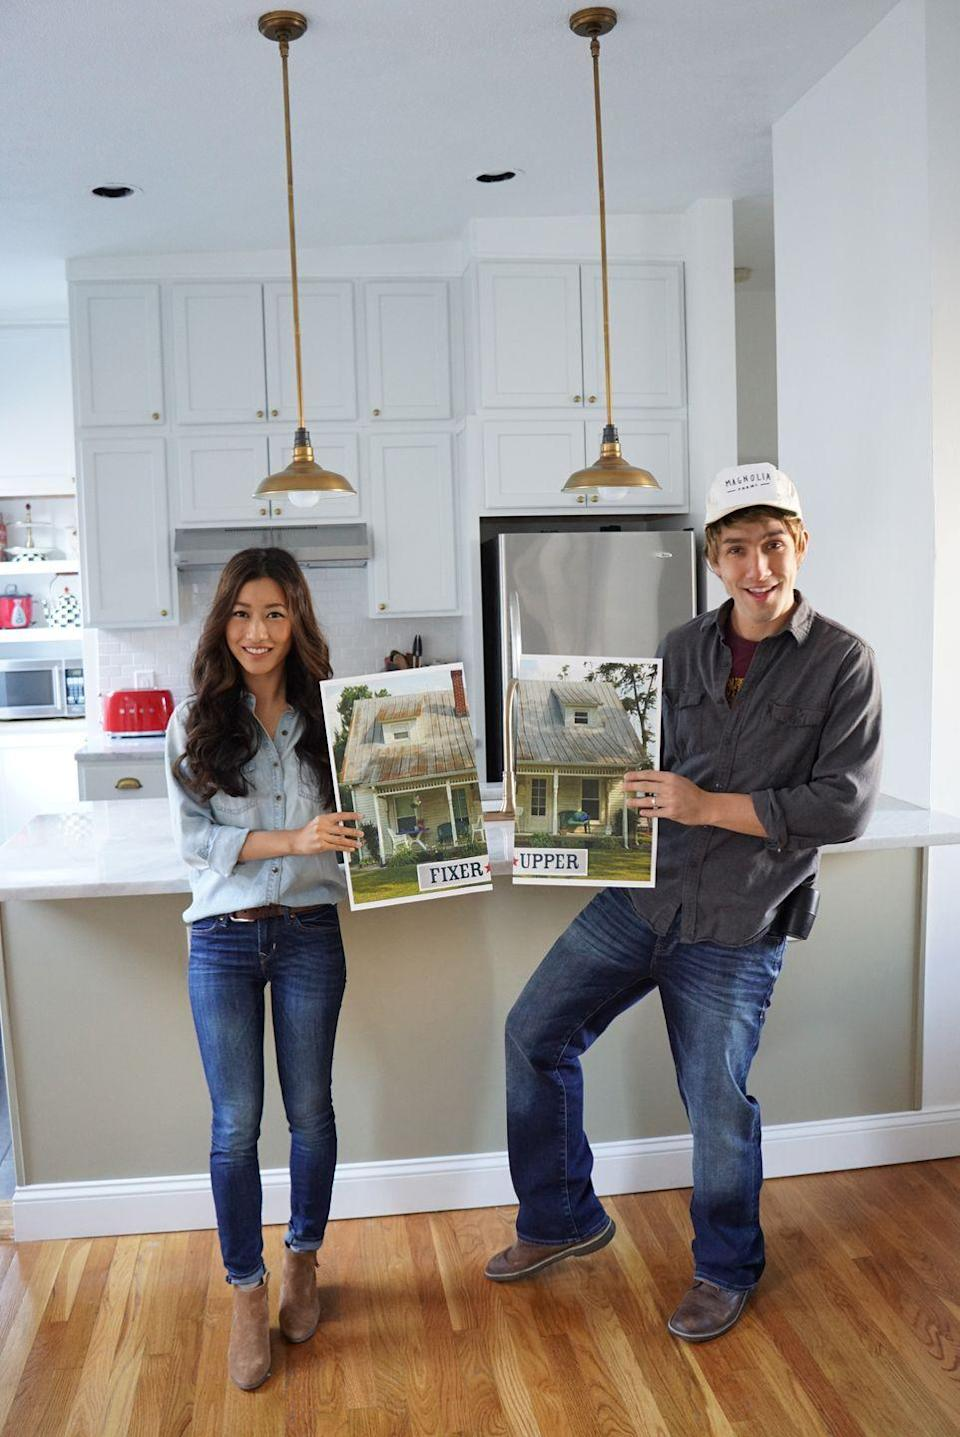 """<p>Because your party guests need more Chip and Joanna Gaines in their life now that <em>Fixer Upper </em>is off the air. This straight-from-your-closet costume will give them the Waco fix everyone needs. </p><p><em><a href=""""https://www.extrapetite.com/2016/10/easy-last-minute-couple-halloween-costume.html"""" rel=""""nofollow noopener"""" target=""""_blank"""" data-ylk=""""slk:Get the tutorial at Extra Petite »"""" class=""""link rapid-noclick-resp"""">Get the tutorial at Extra Petite »</a></em></p>"""